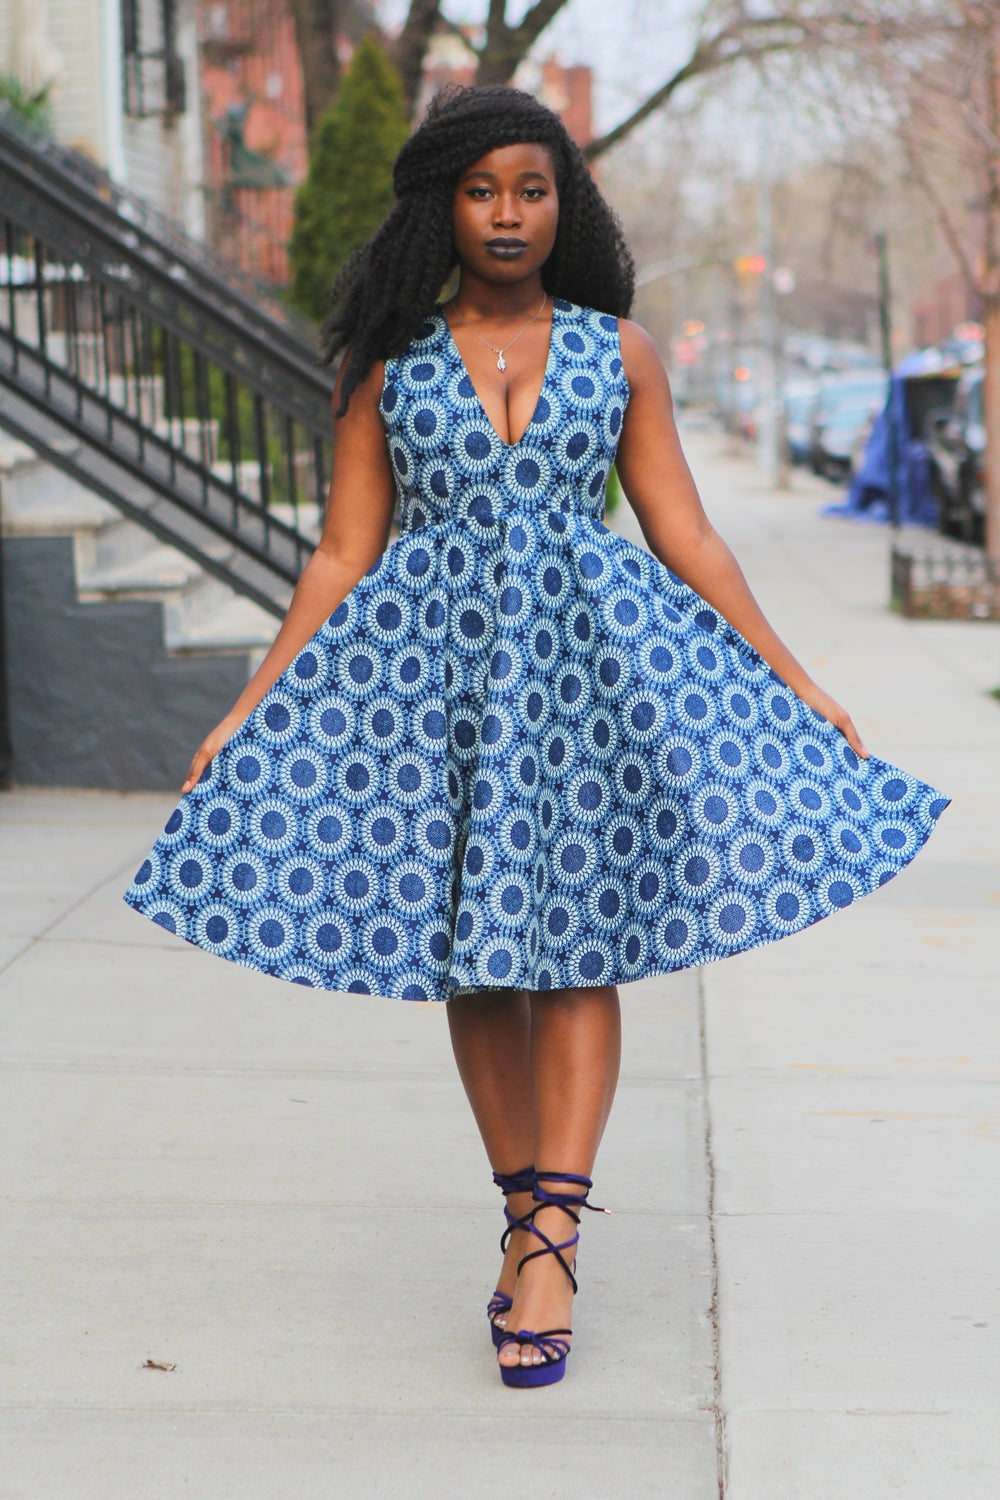 Image of MISSY - Blue White Circle Vintage Inspired African Print Wax Print Dress Dress SM- XL